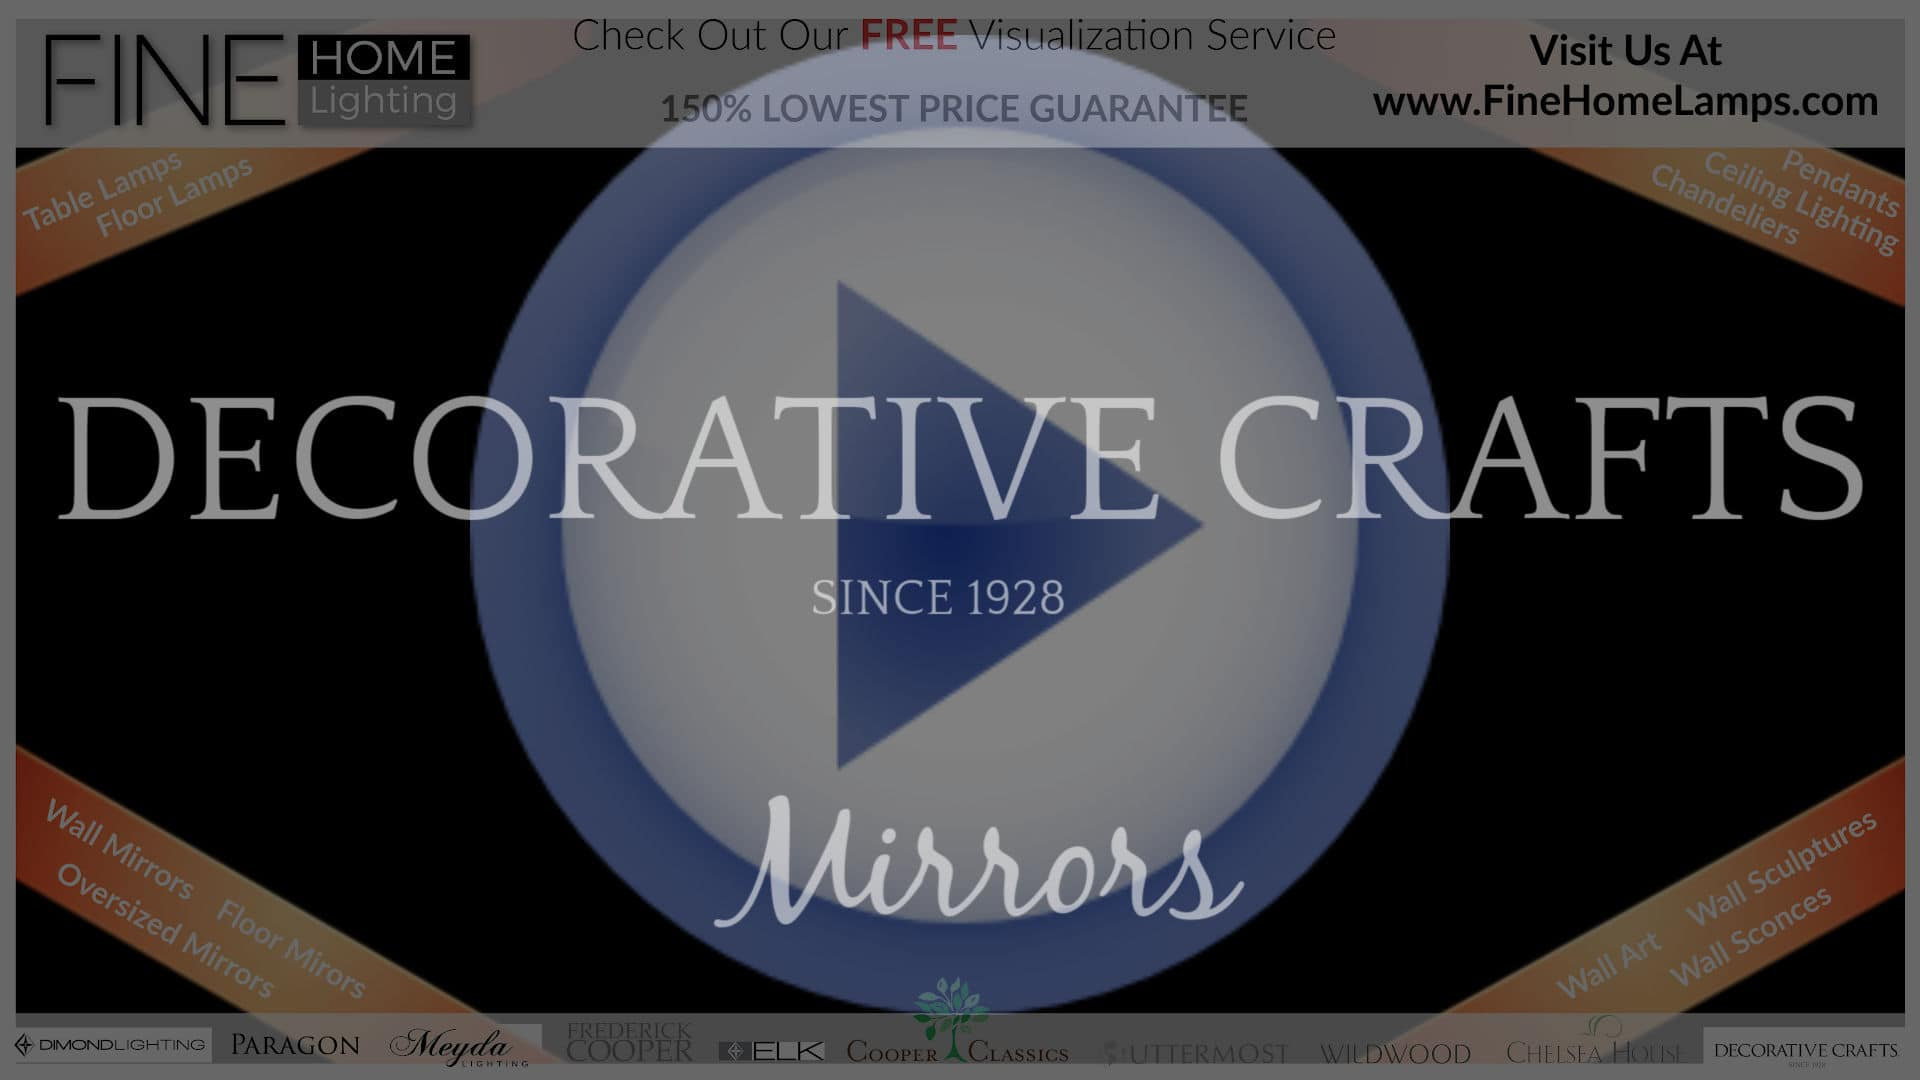 DECORATIVE-CRAFTS-Mirrors-Thanks-for-watching-this-video-Get-an-additional-15-percent-off-your-next-purchase-Use-Coupon-Code-VIDEO-1